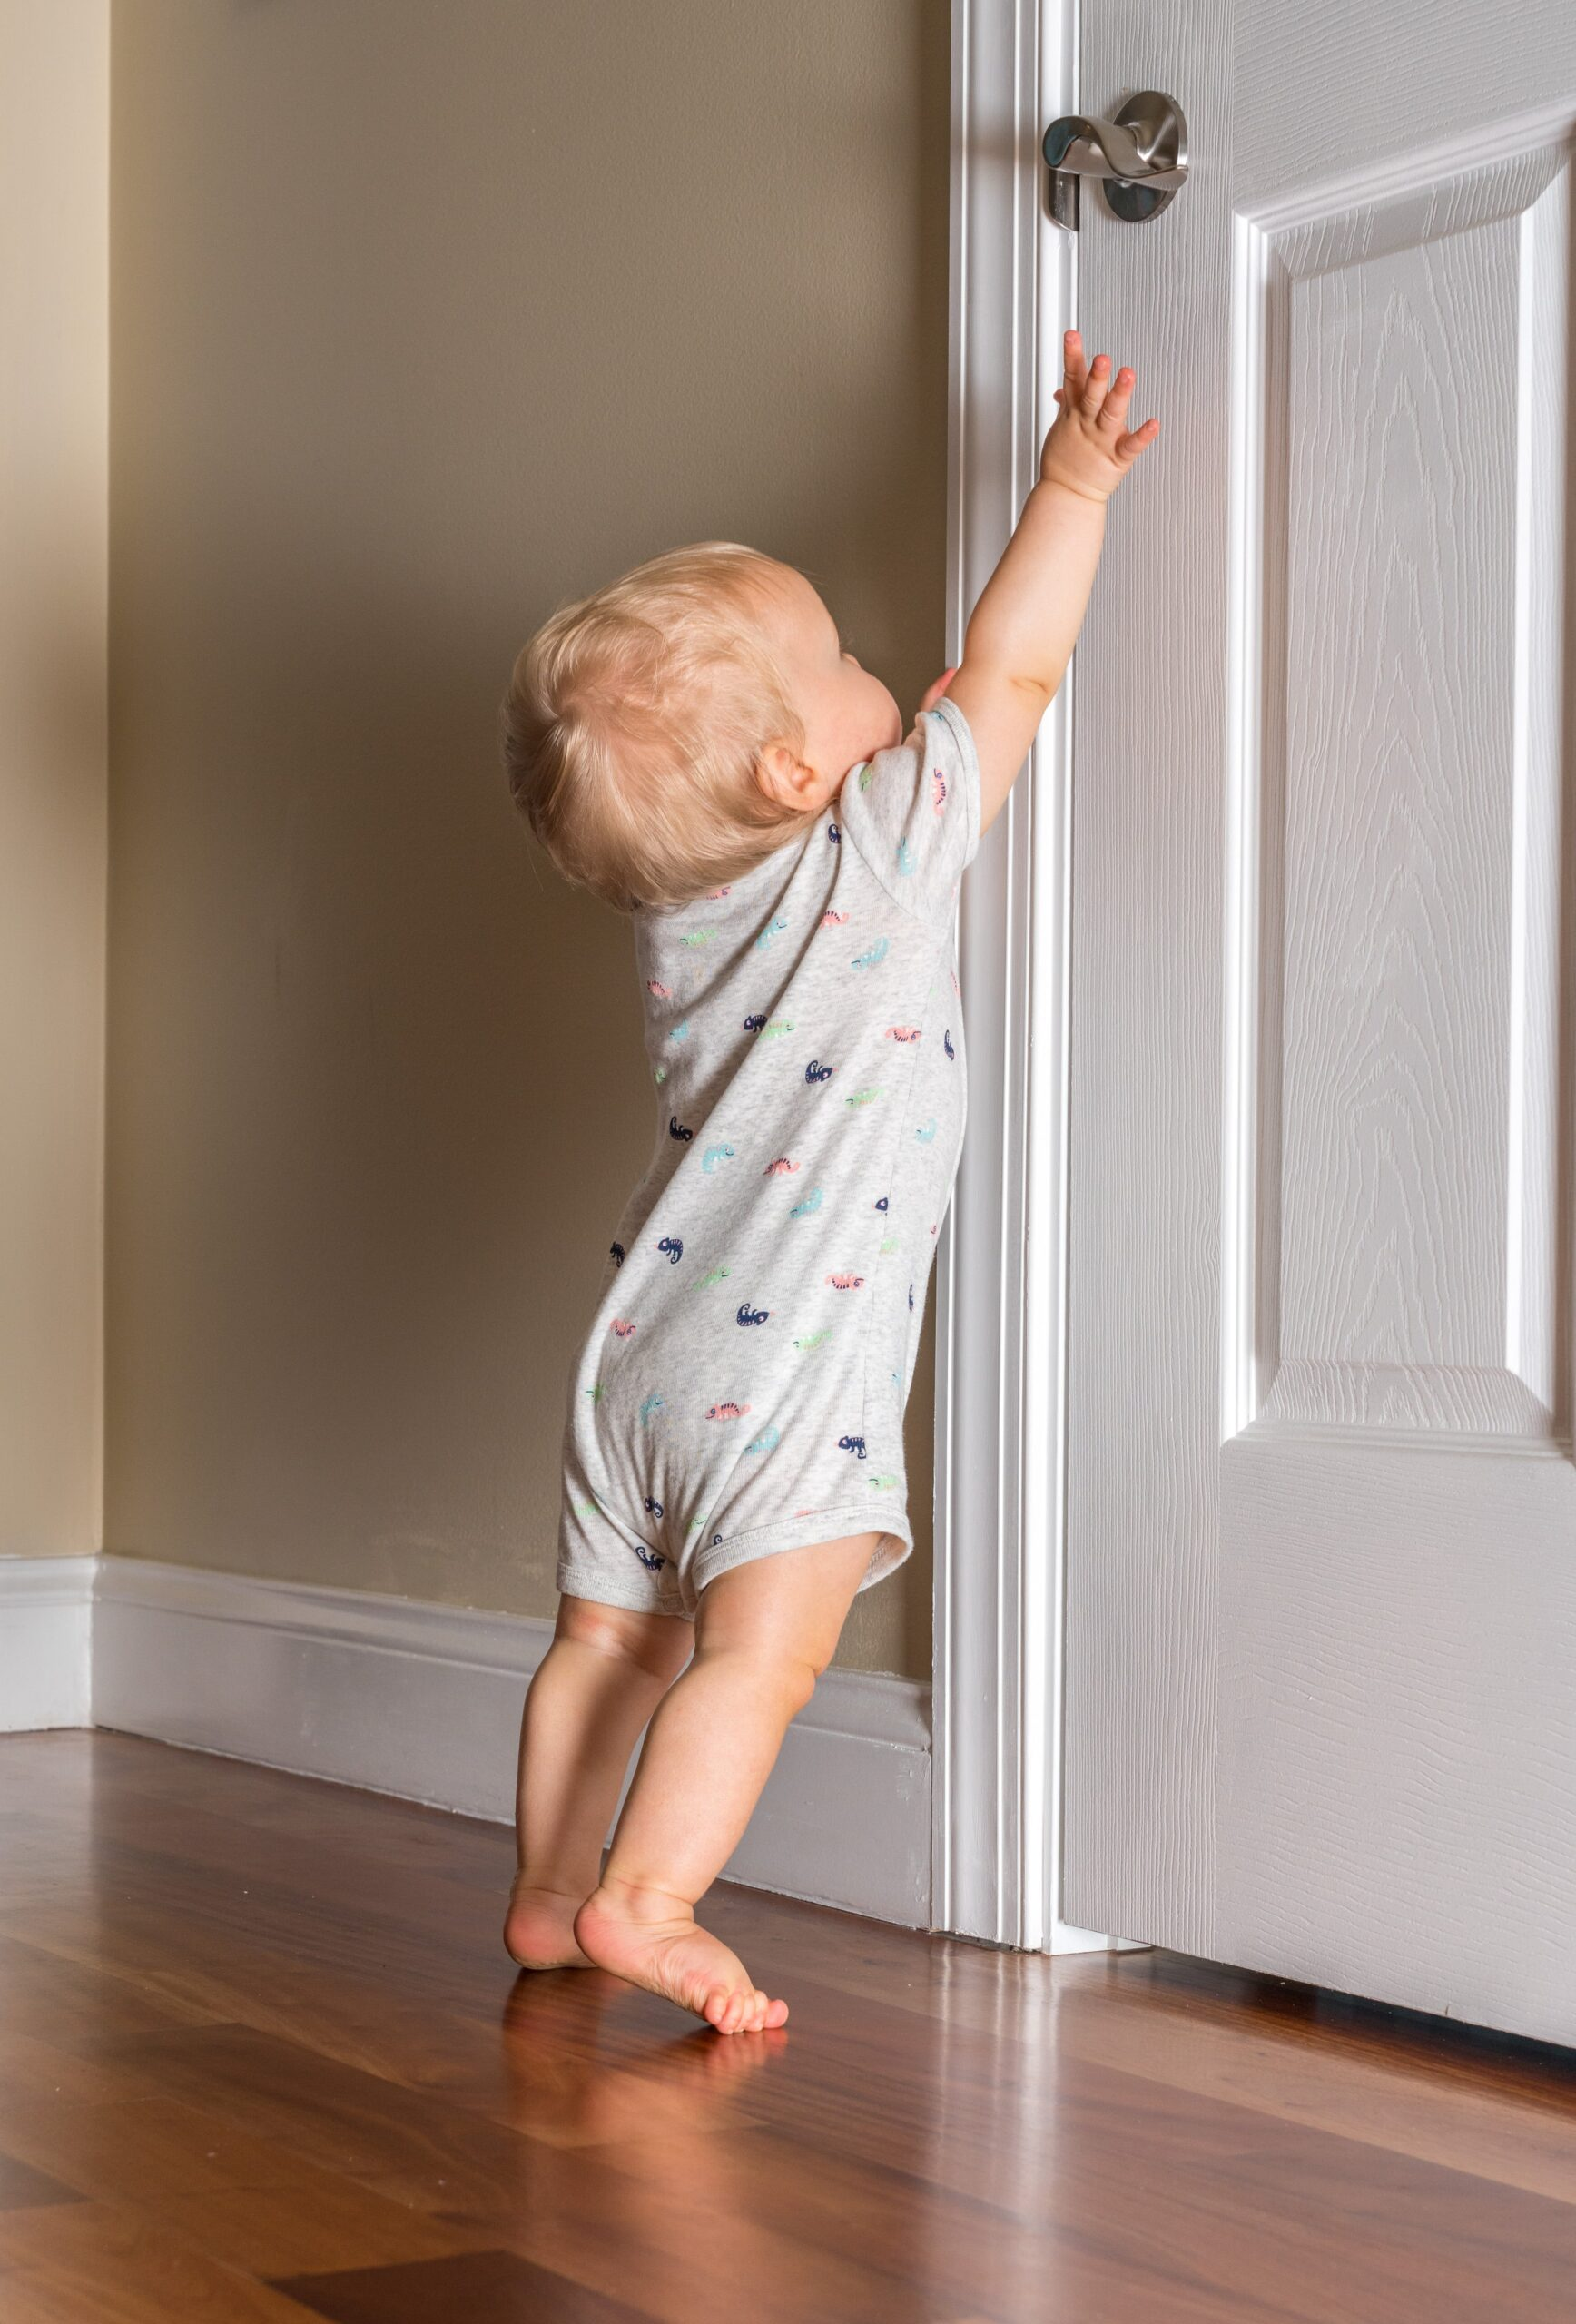 5 Child Safety Door Locks to Childproof Your Home